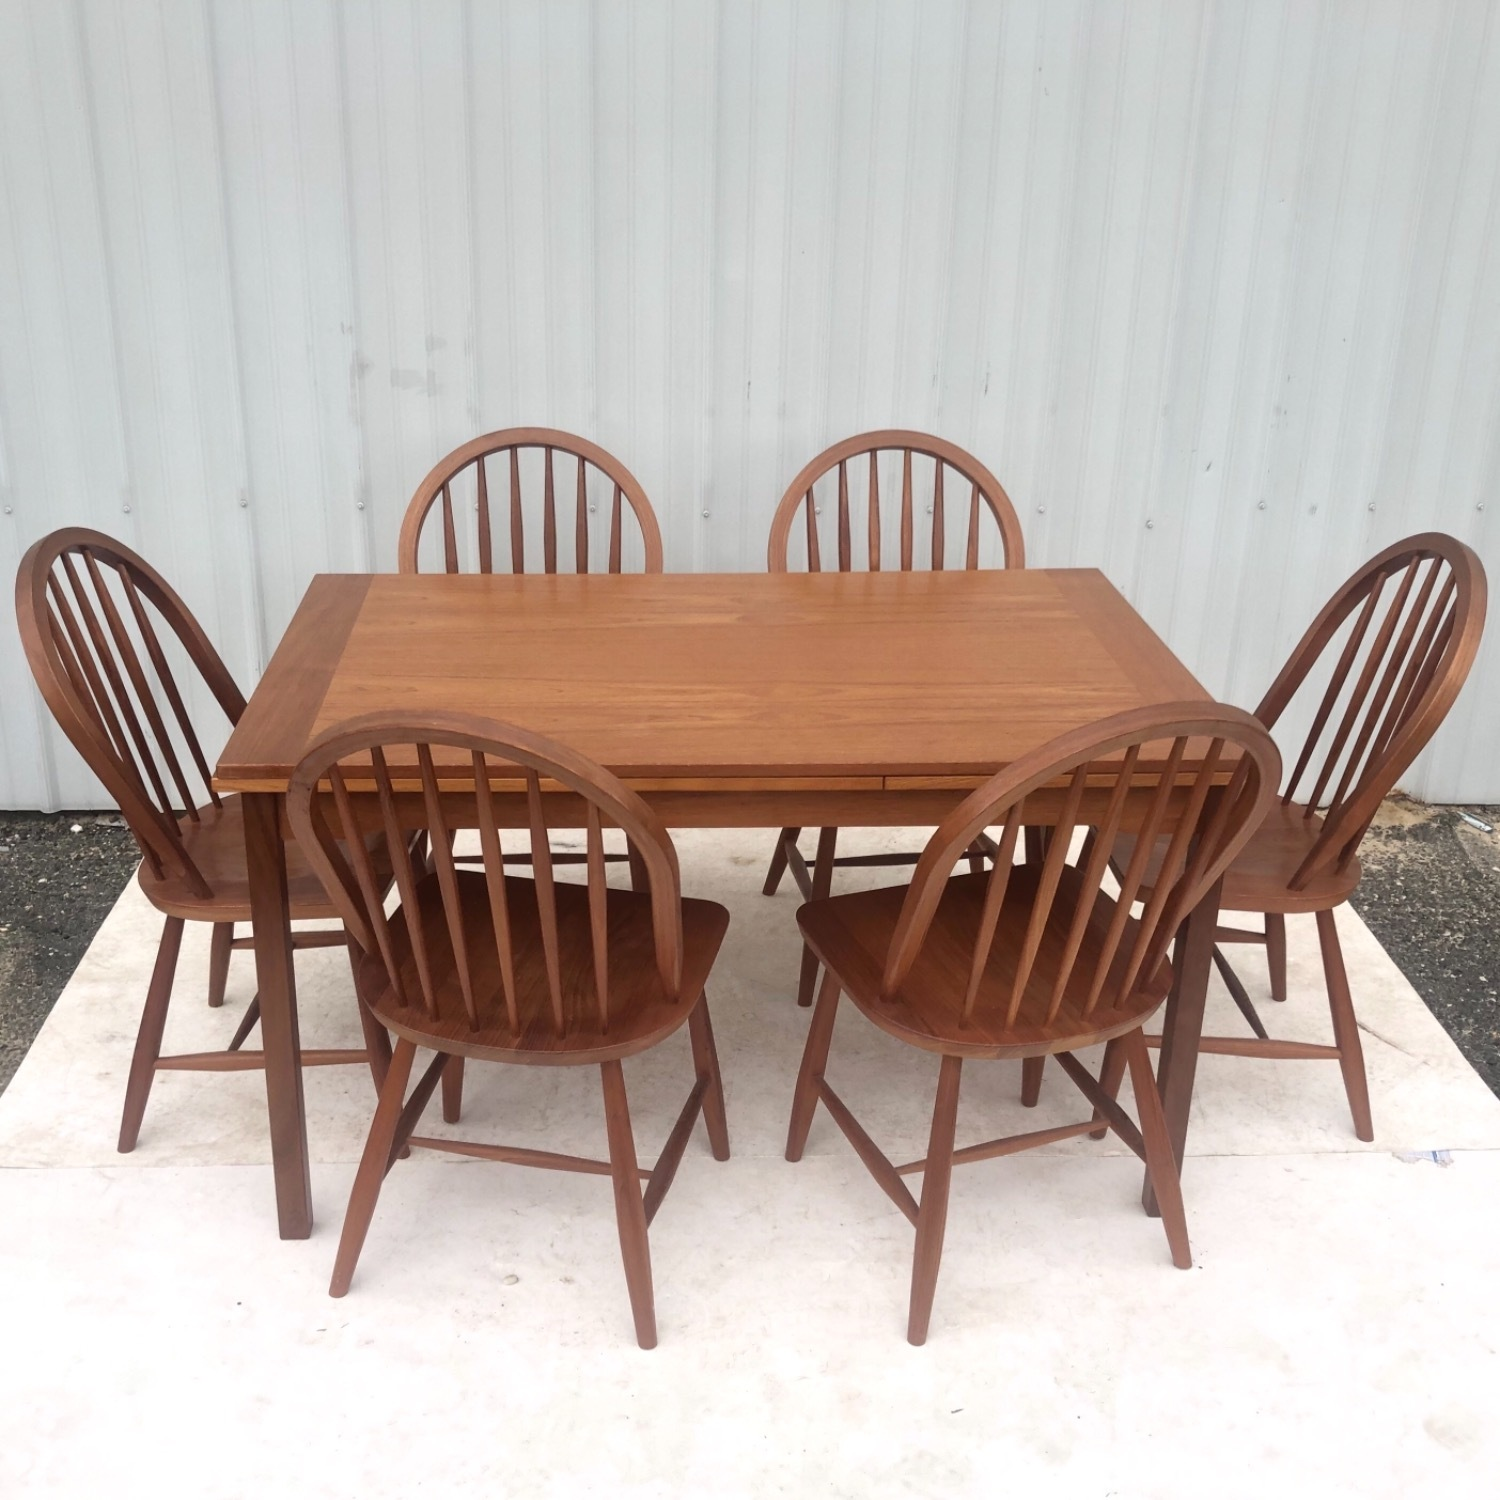 Vintage Modern Dining Set w/ Six Chairs - image-2